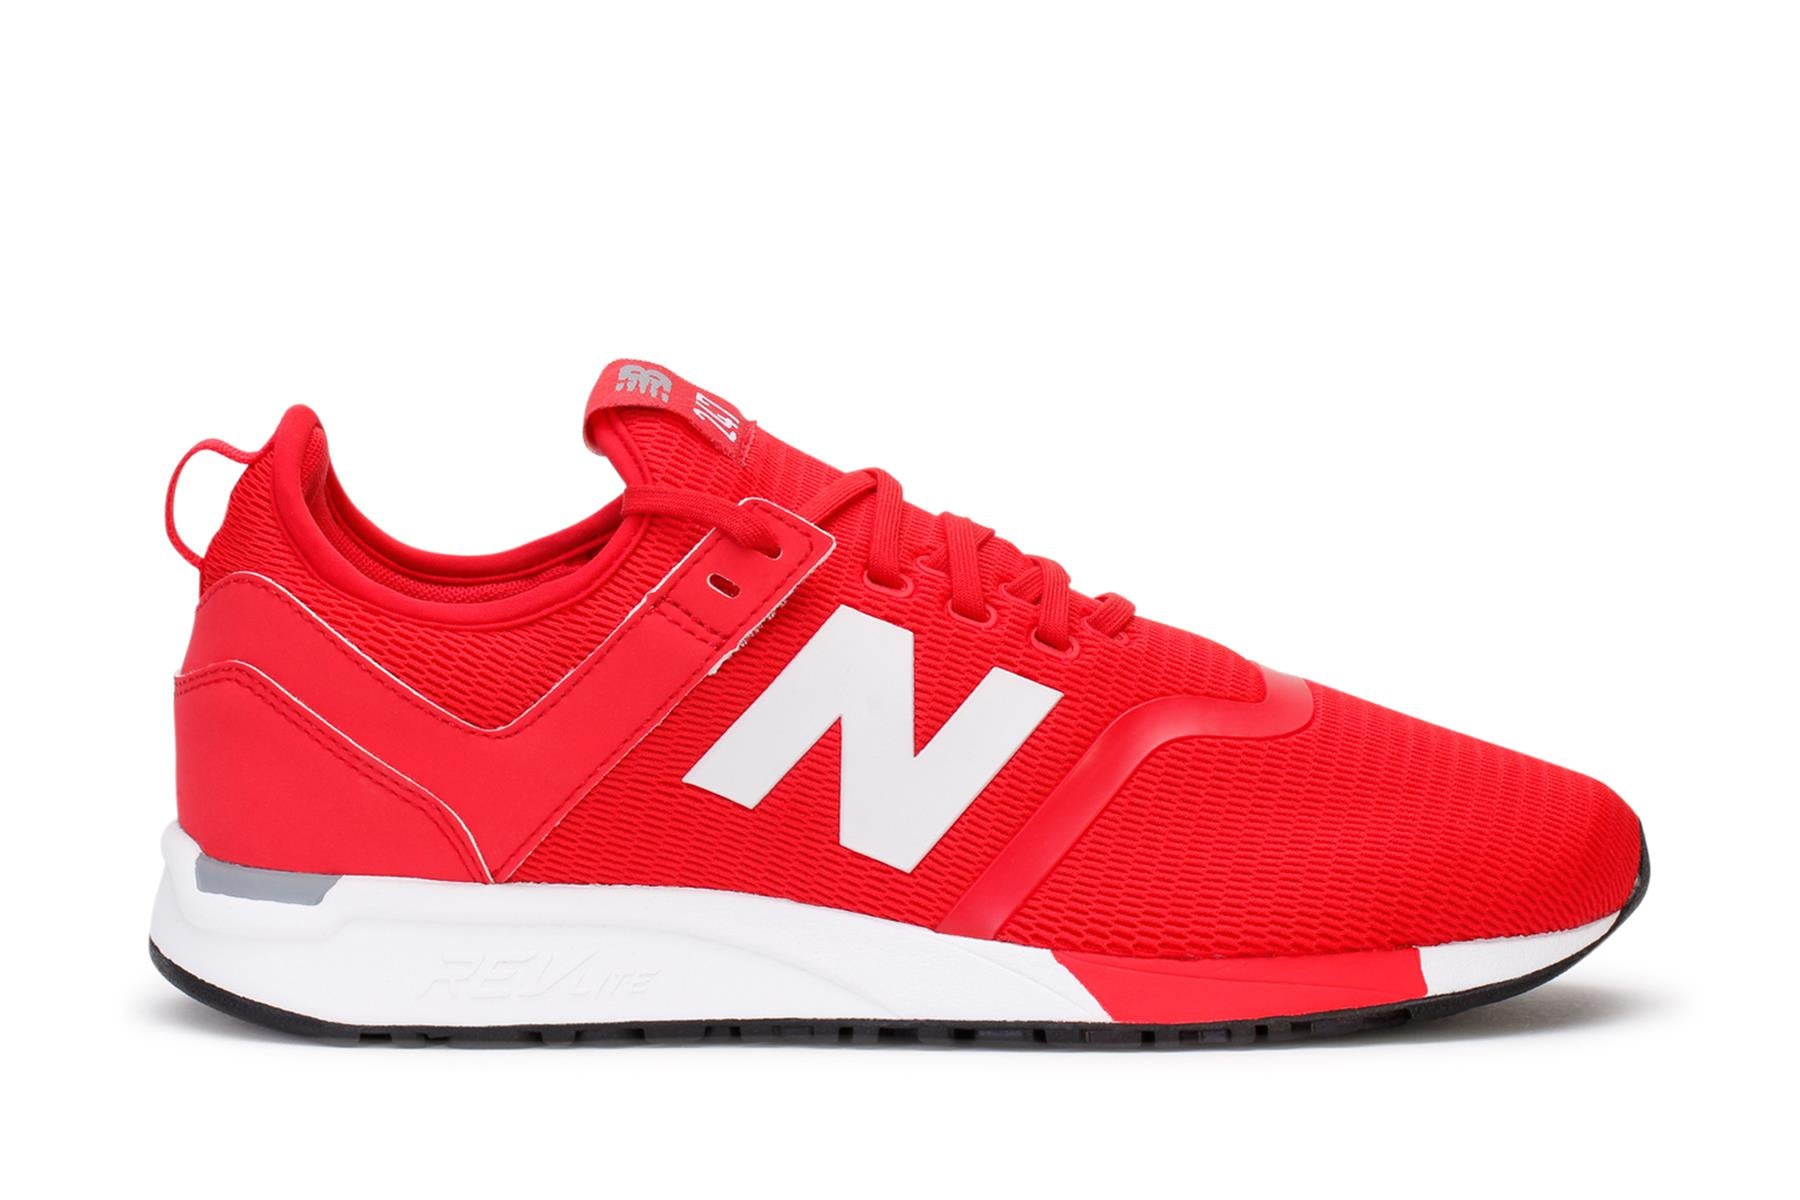 247 Decon New Balance Sneakers